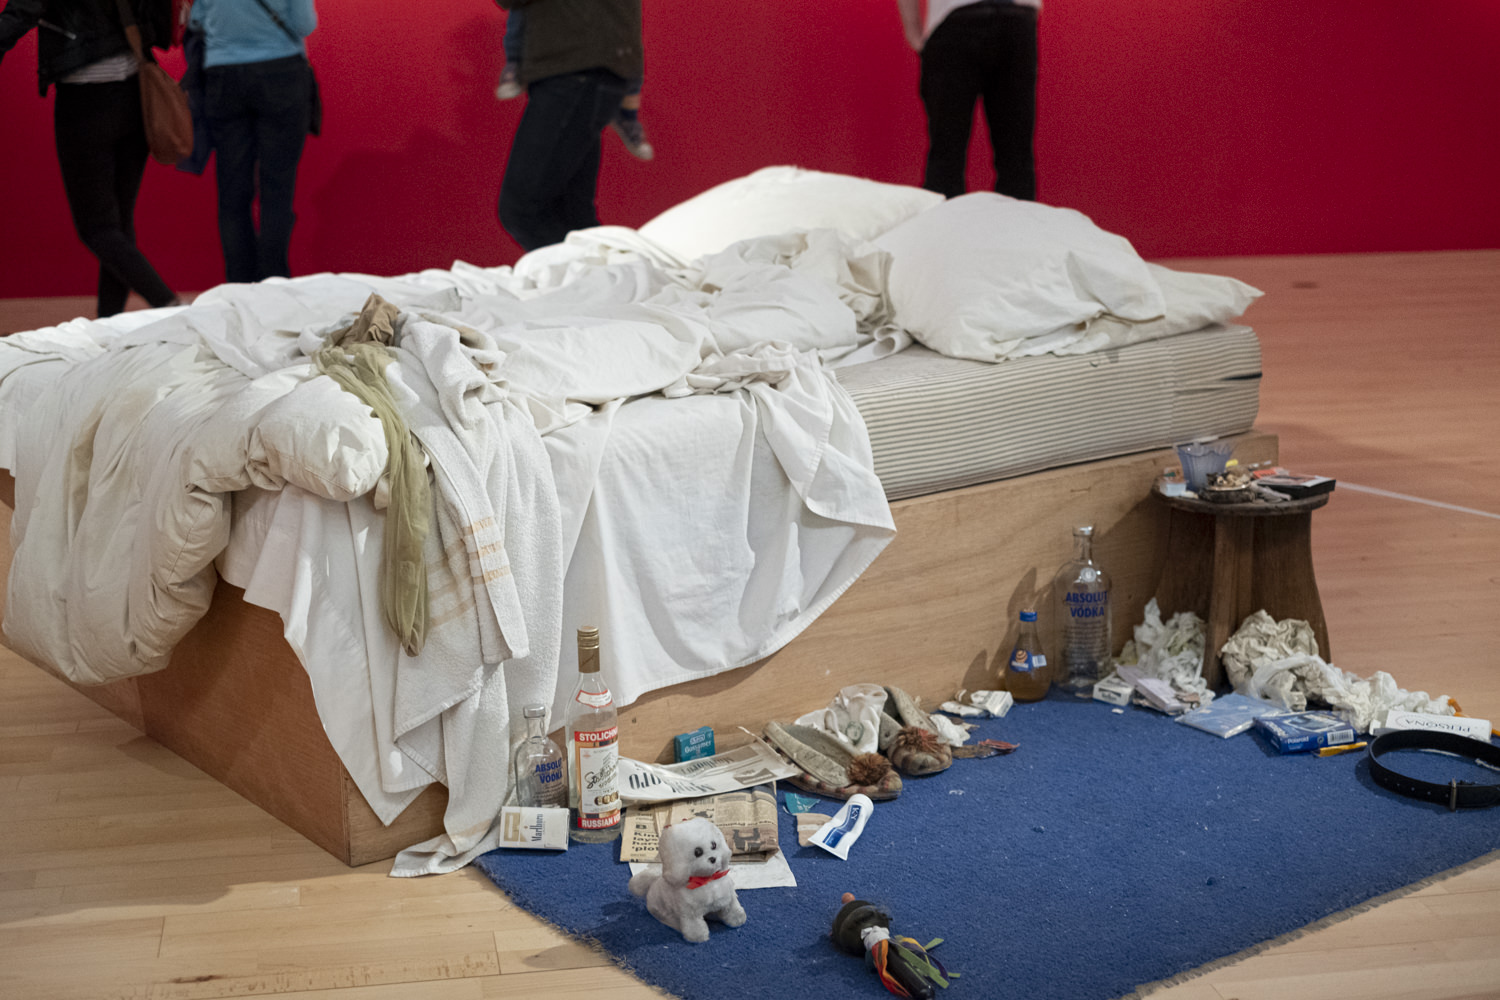 tracey emin's my bed at the tate liverpool